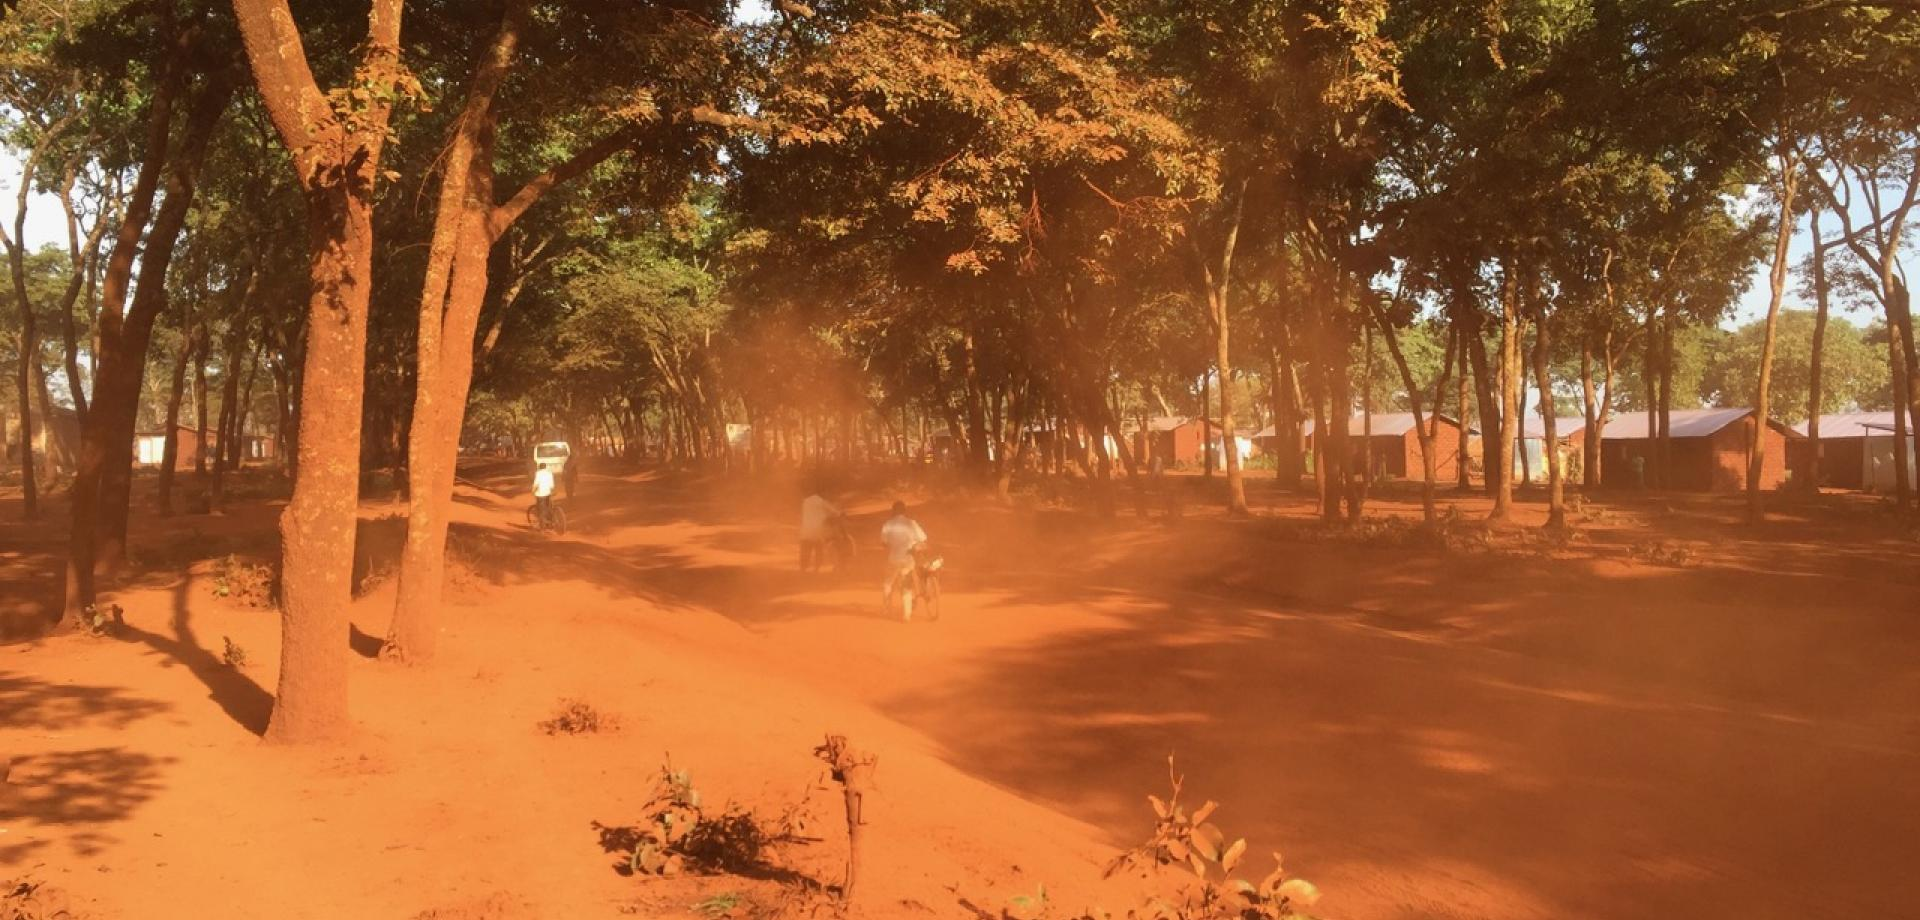 The red dust on the road in Makere